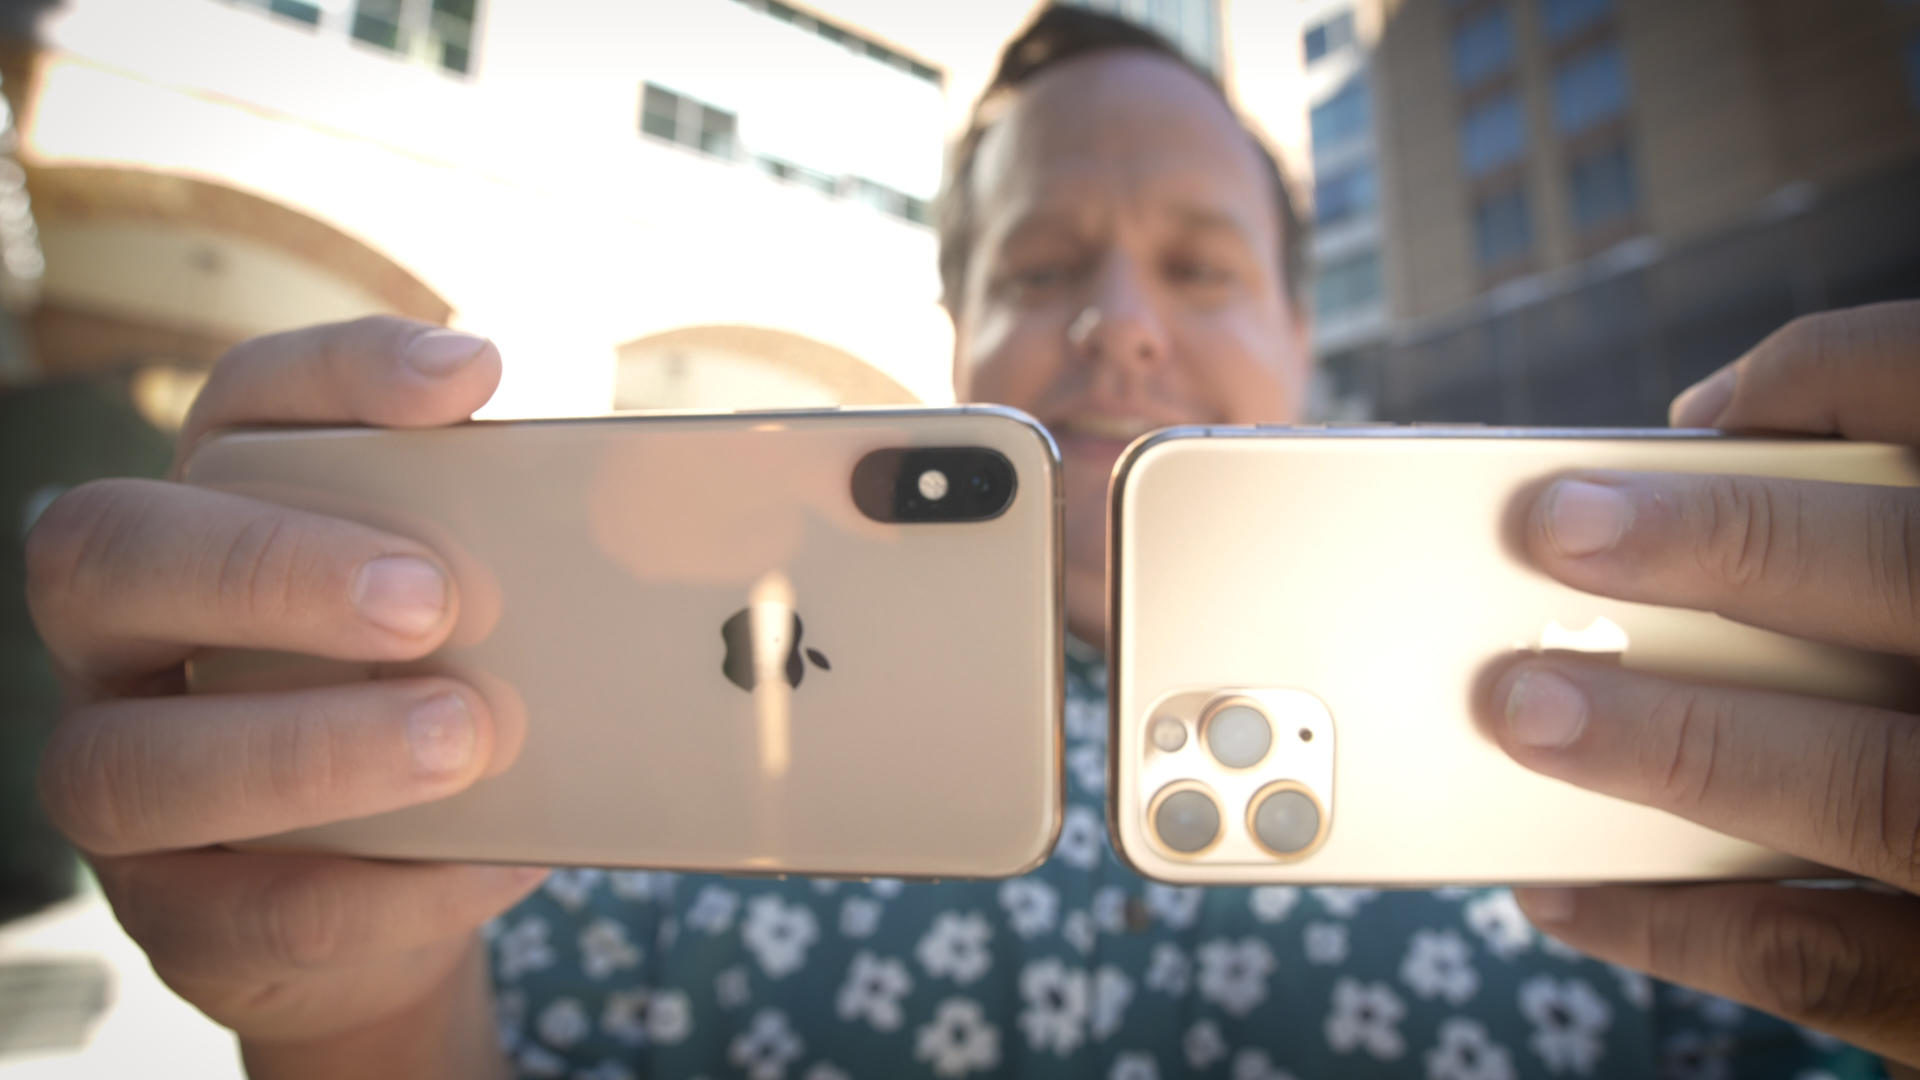 Video: We compare the cameras on the iPhone 11 Pro and iPhone XS